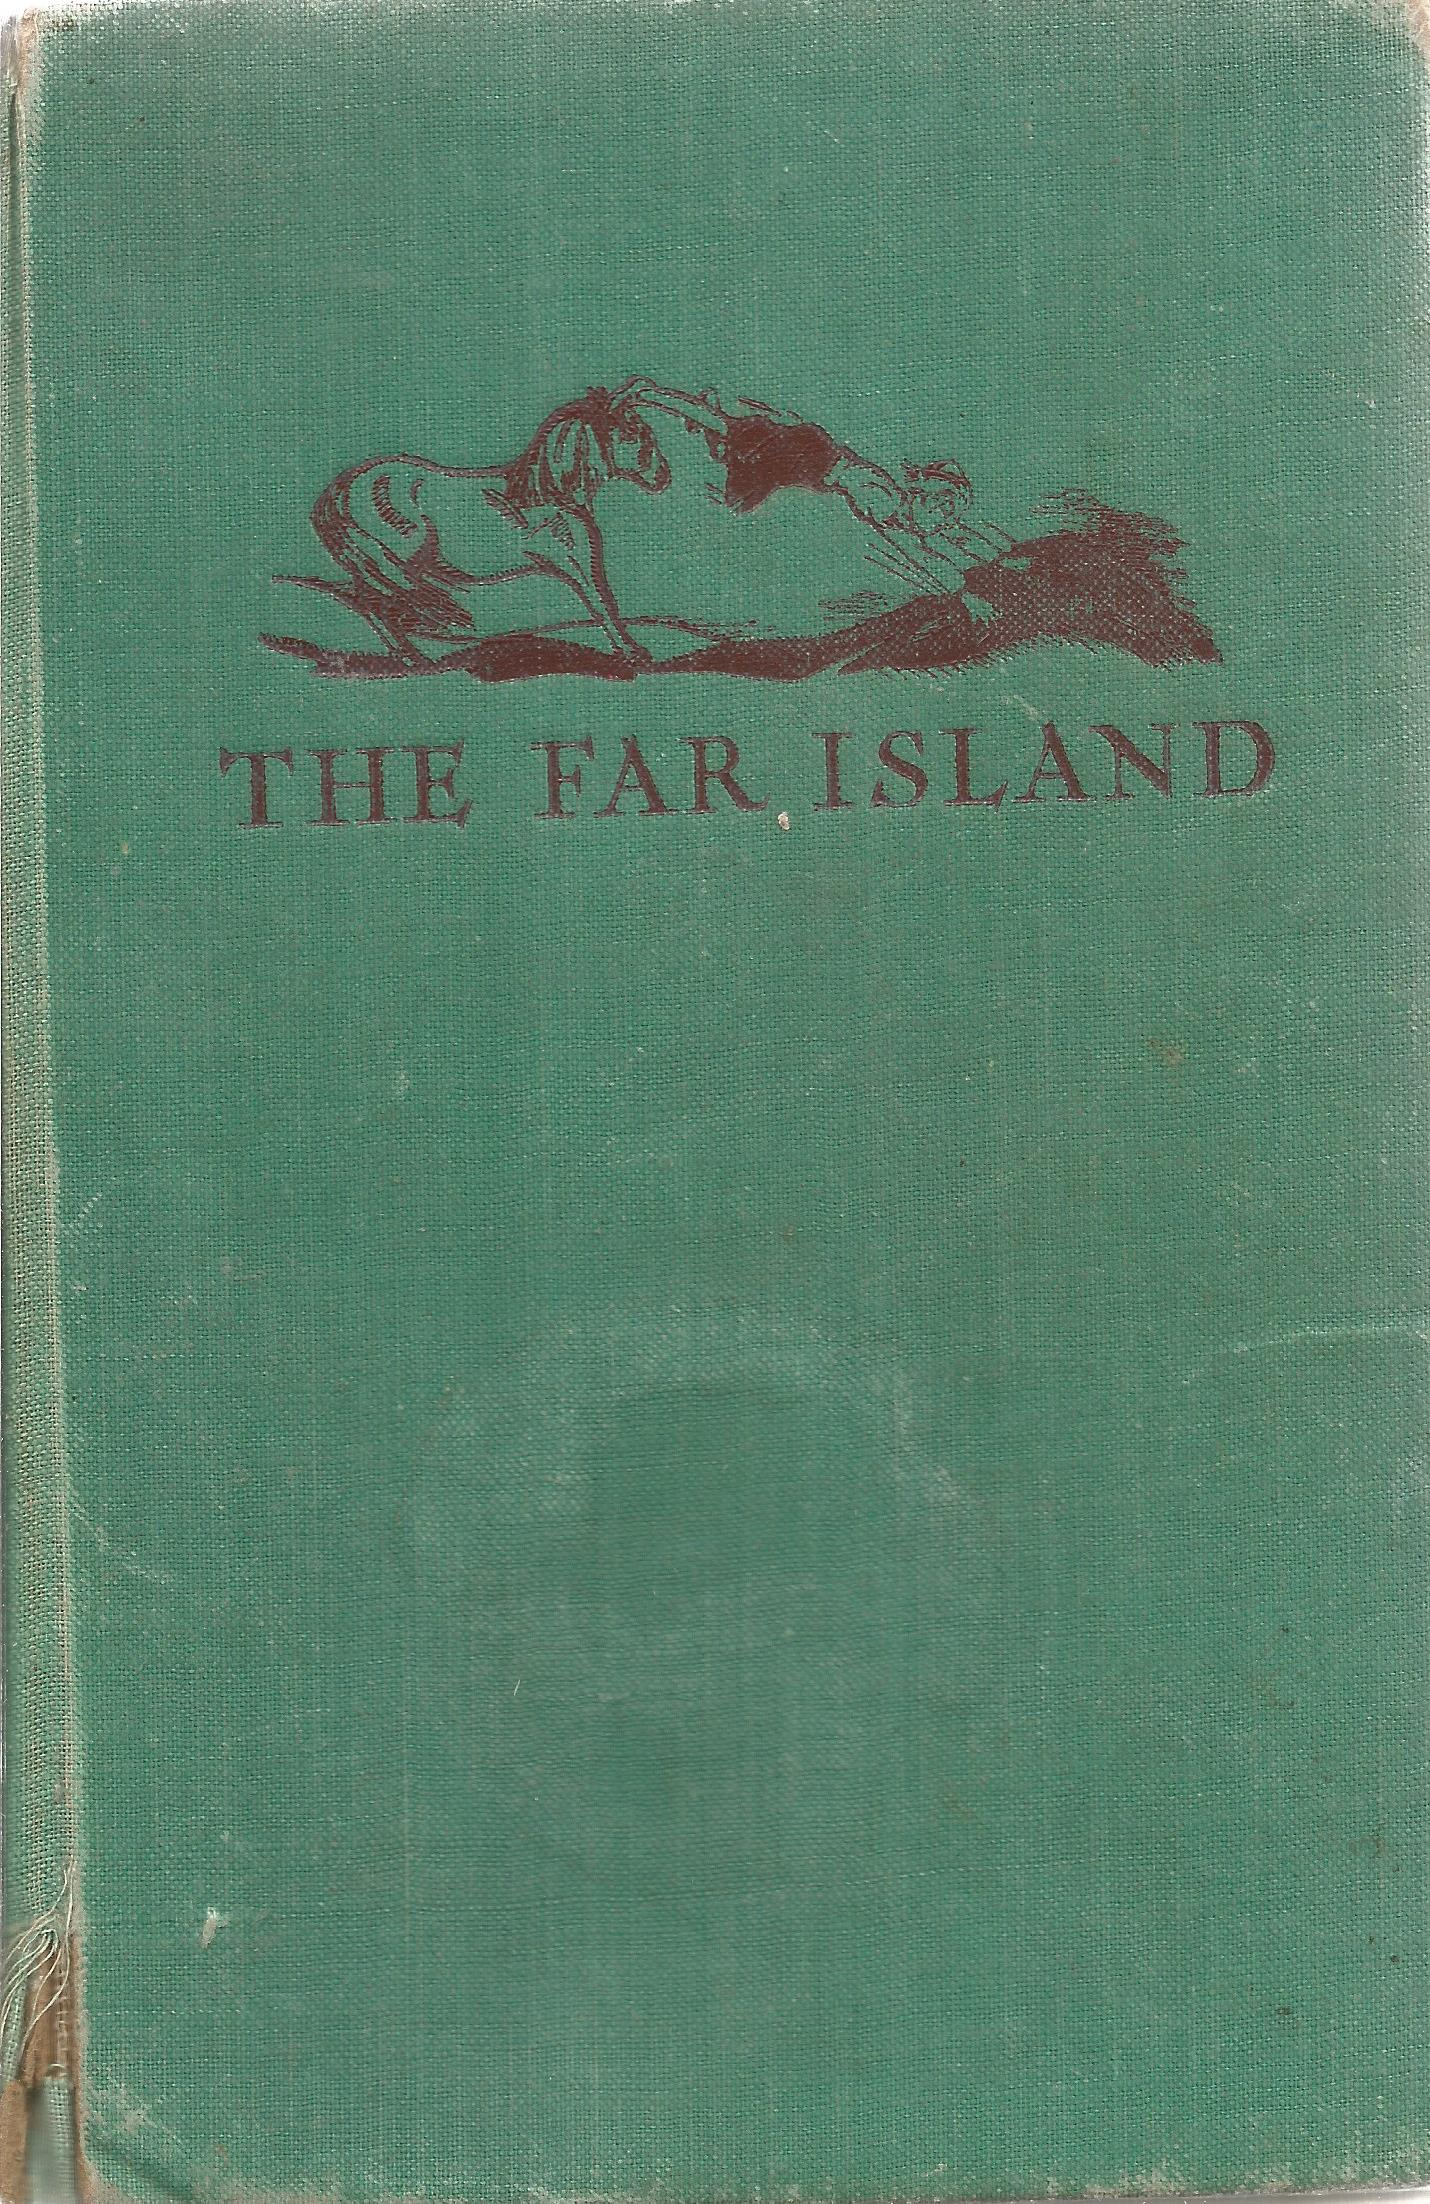 Hardback Book The Far Island A Story for Girls and Boys by M Pardoe Illustrated by R Turvey 1936